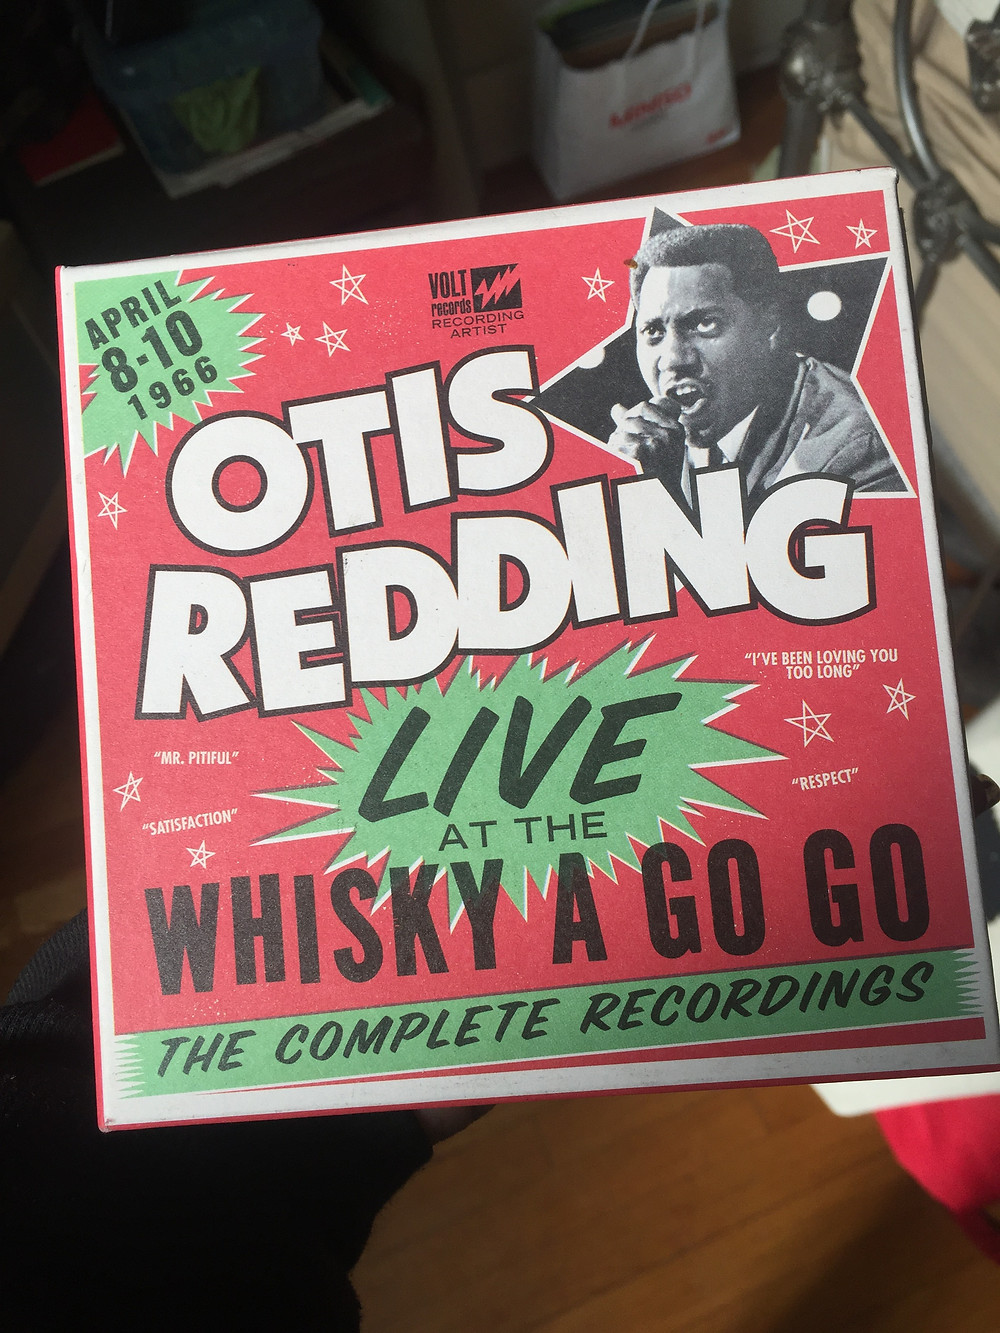 it's official: Grammy Nomination for Otis Redding Live at the Whisky A Go Go